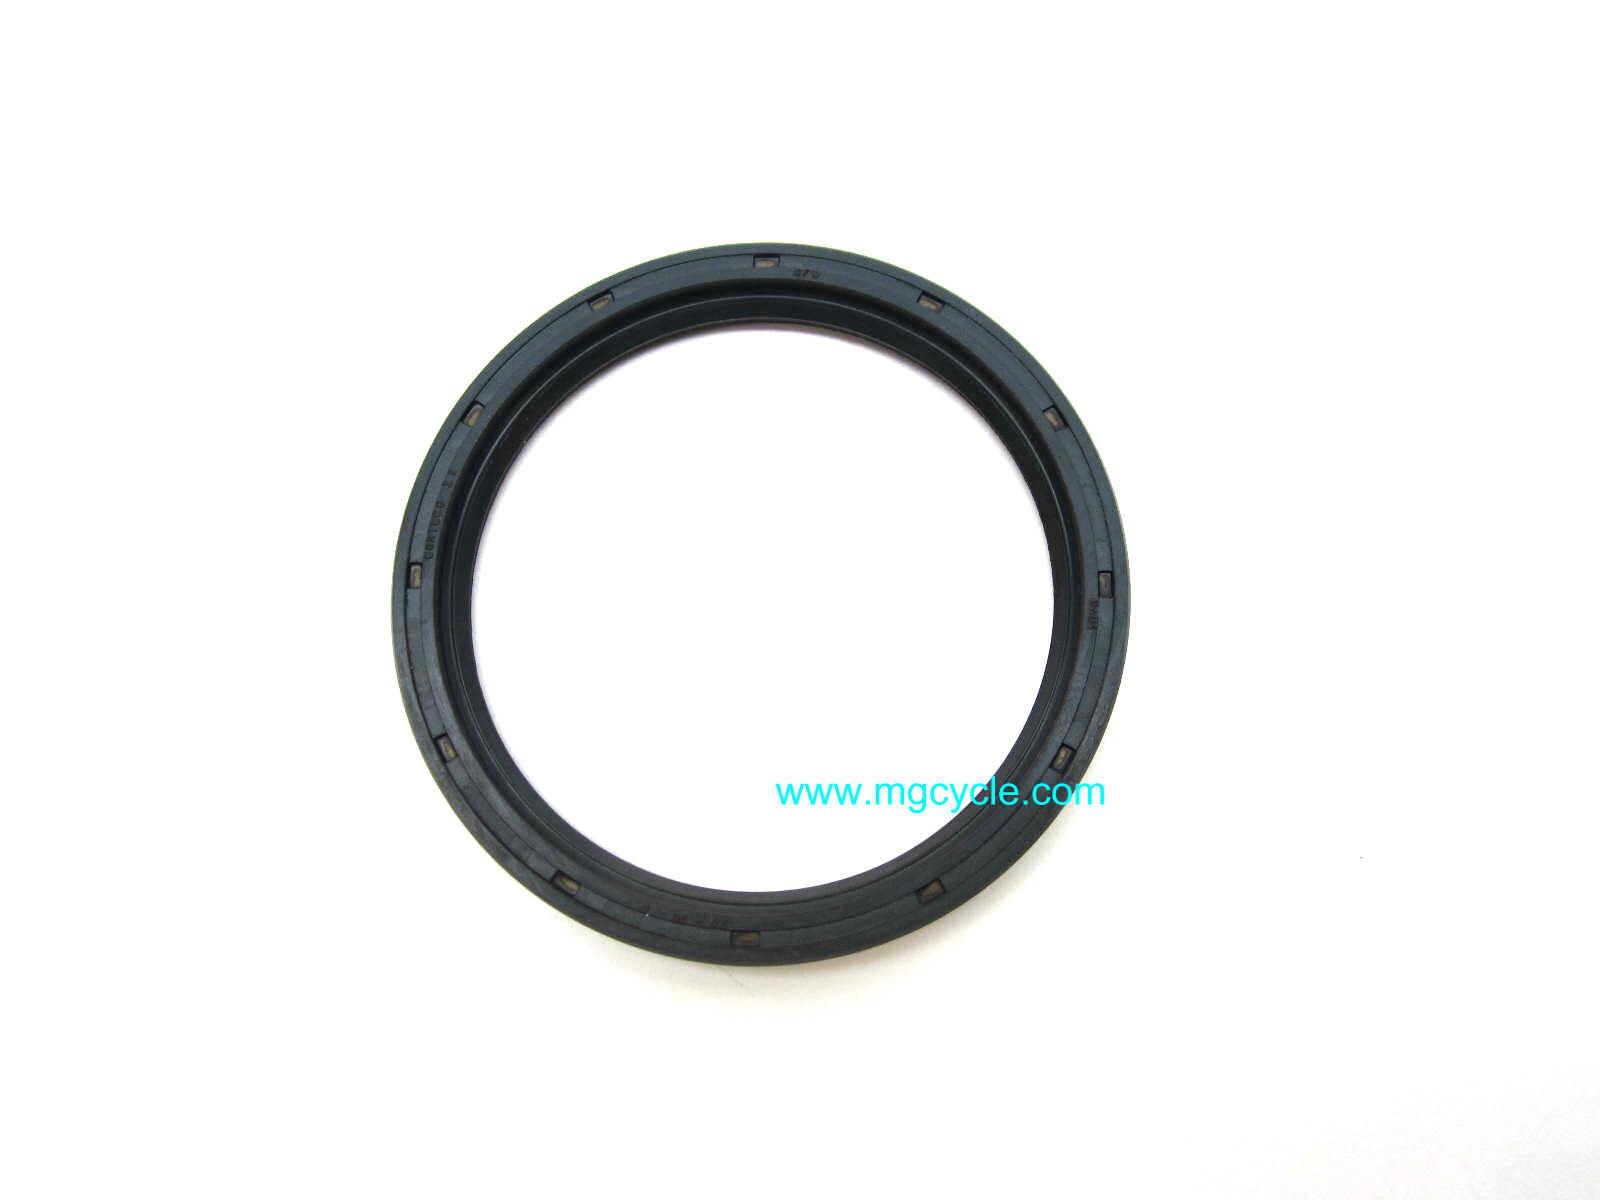 Brembo bleeder nipple cover with rubber